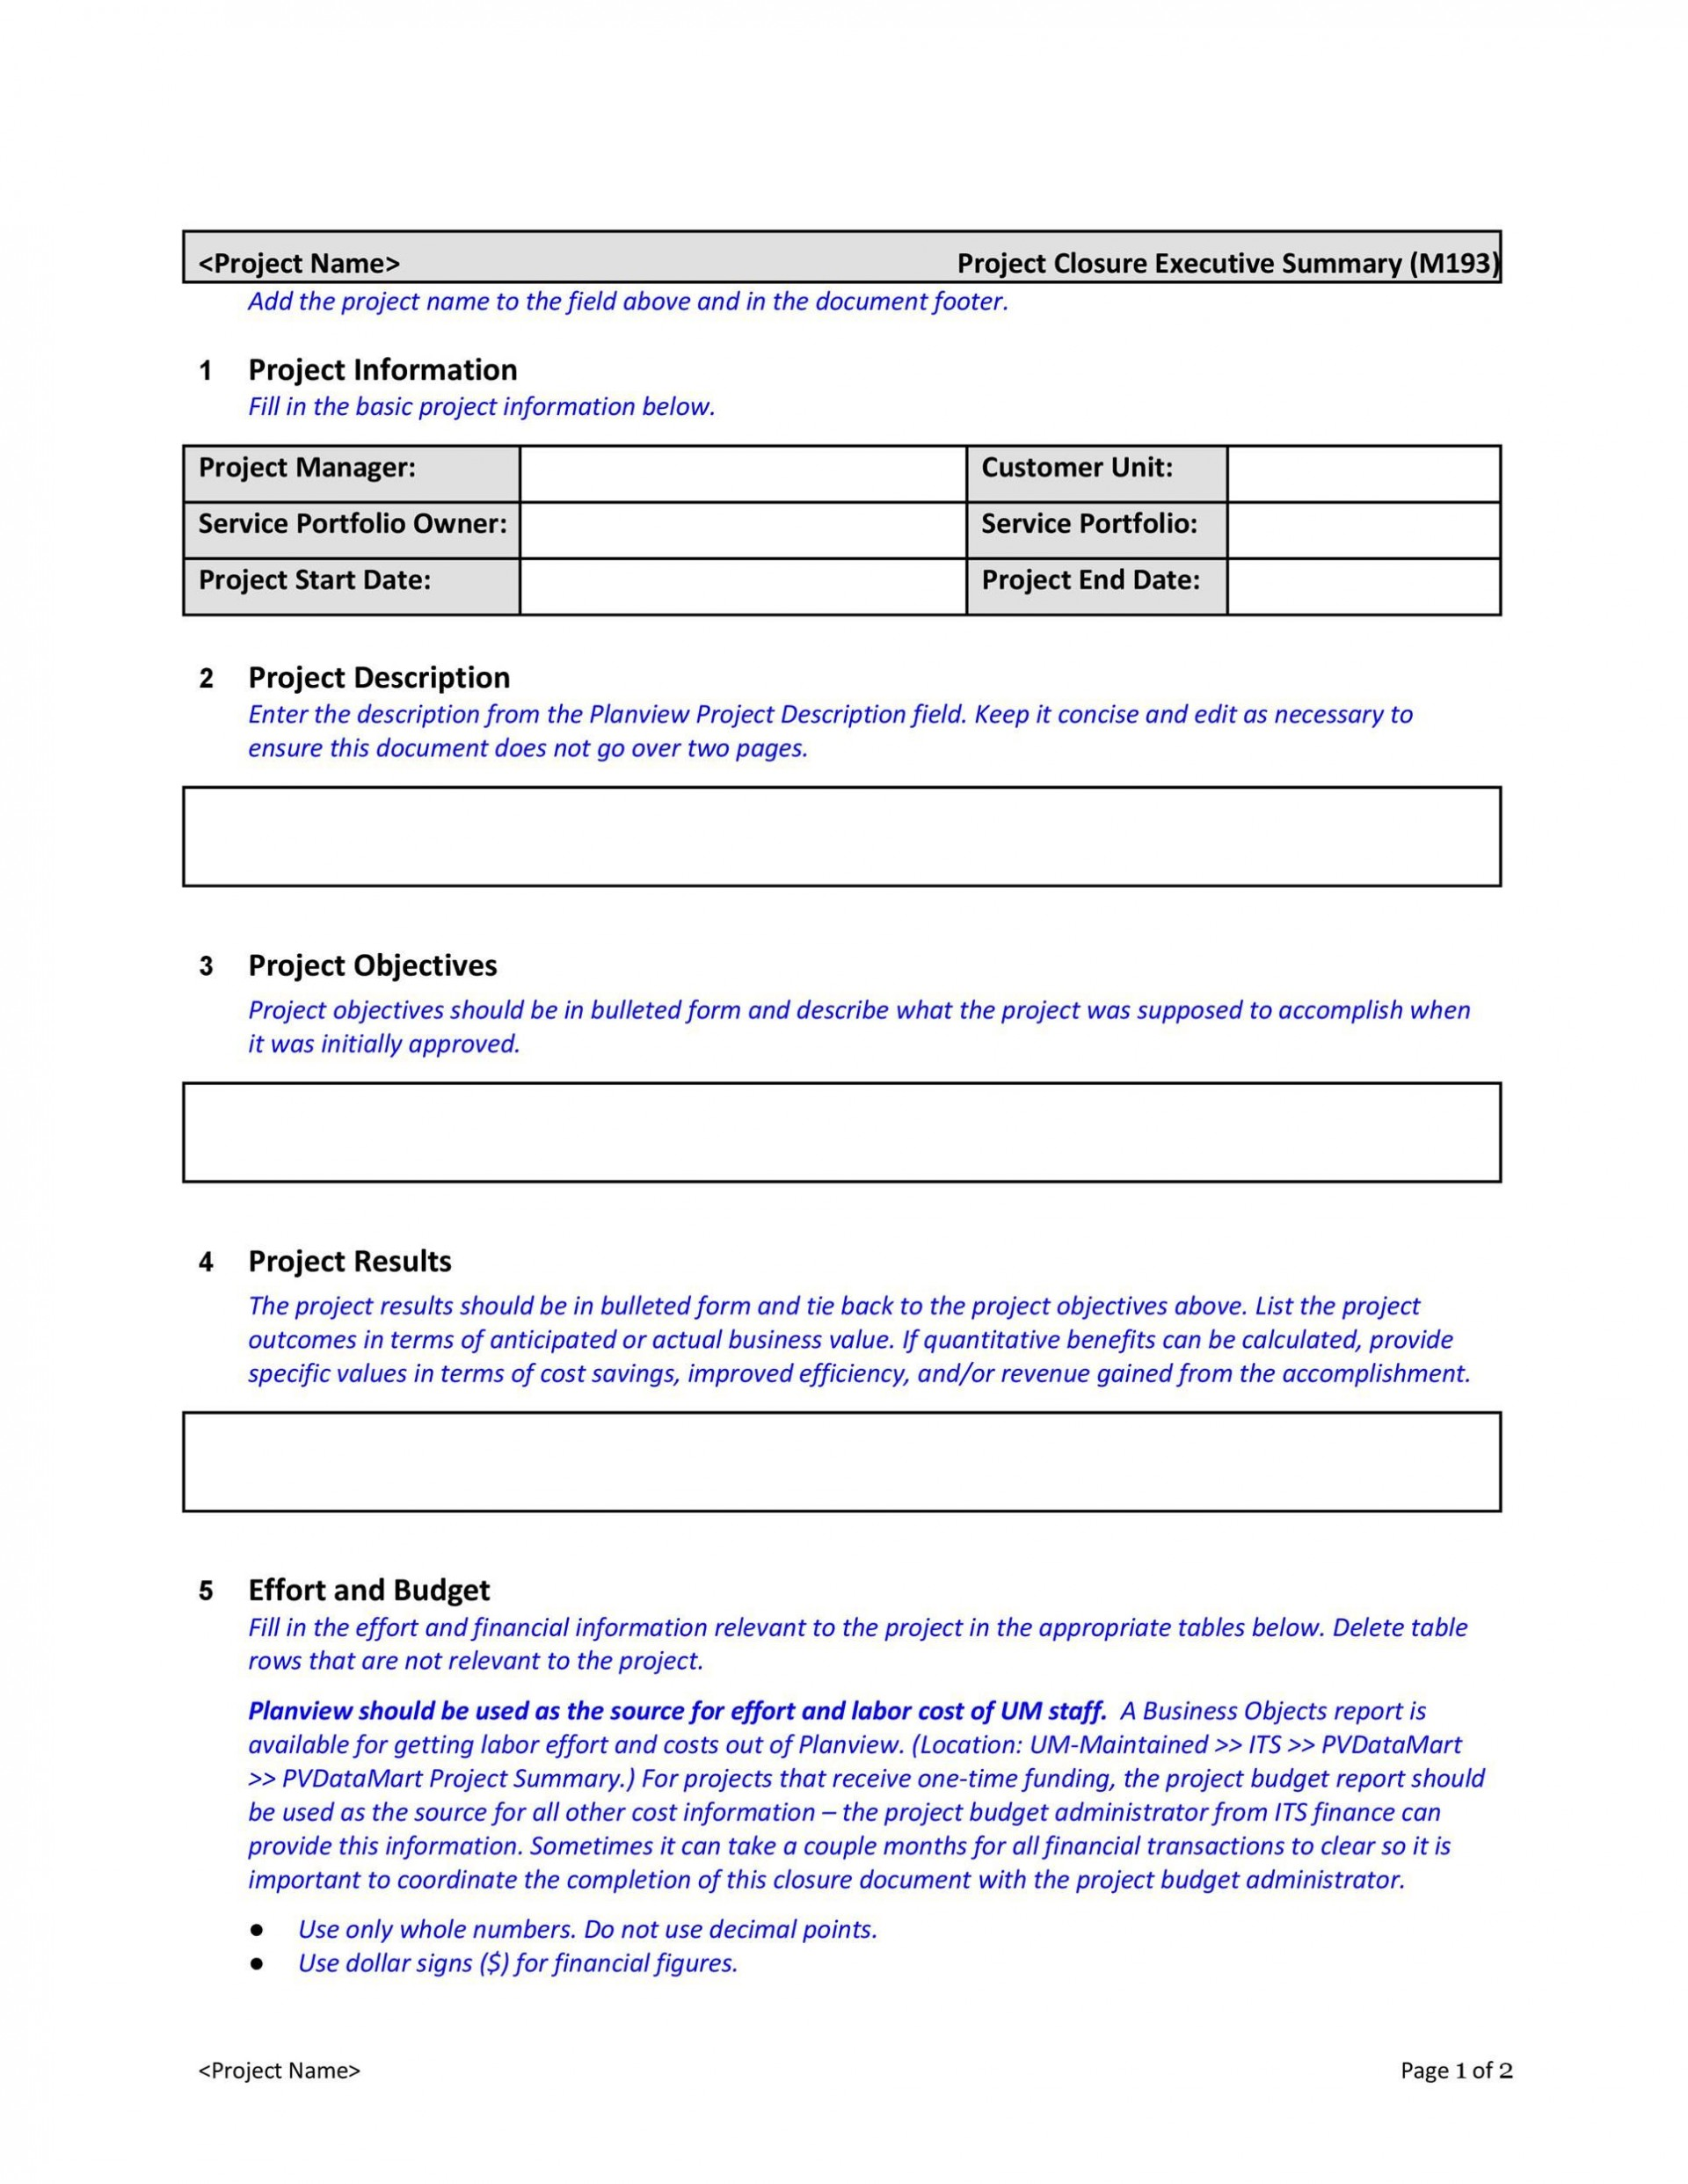 004 Top Executive Summary Template Word Free Design 1920